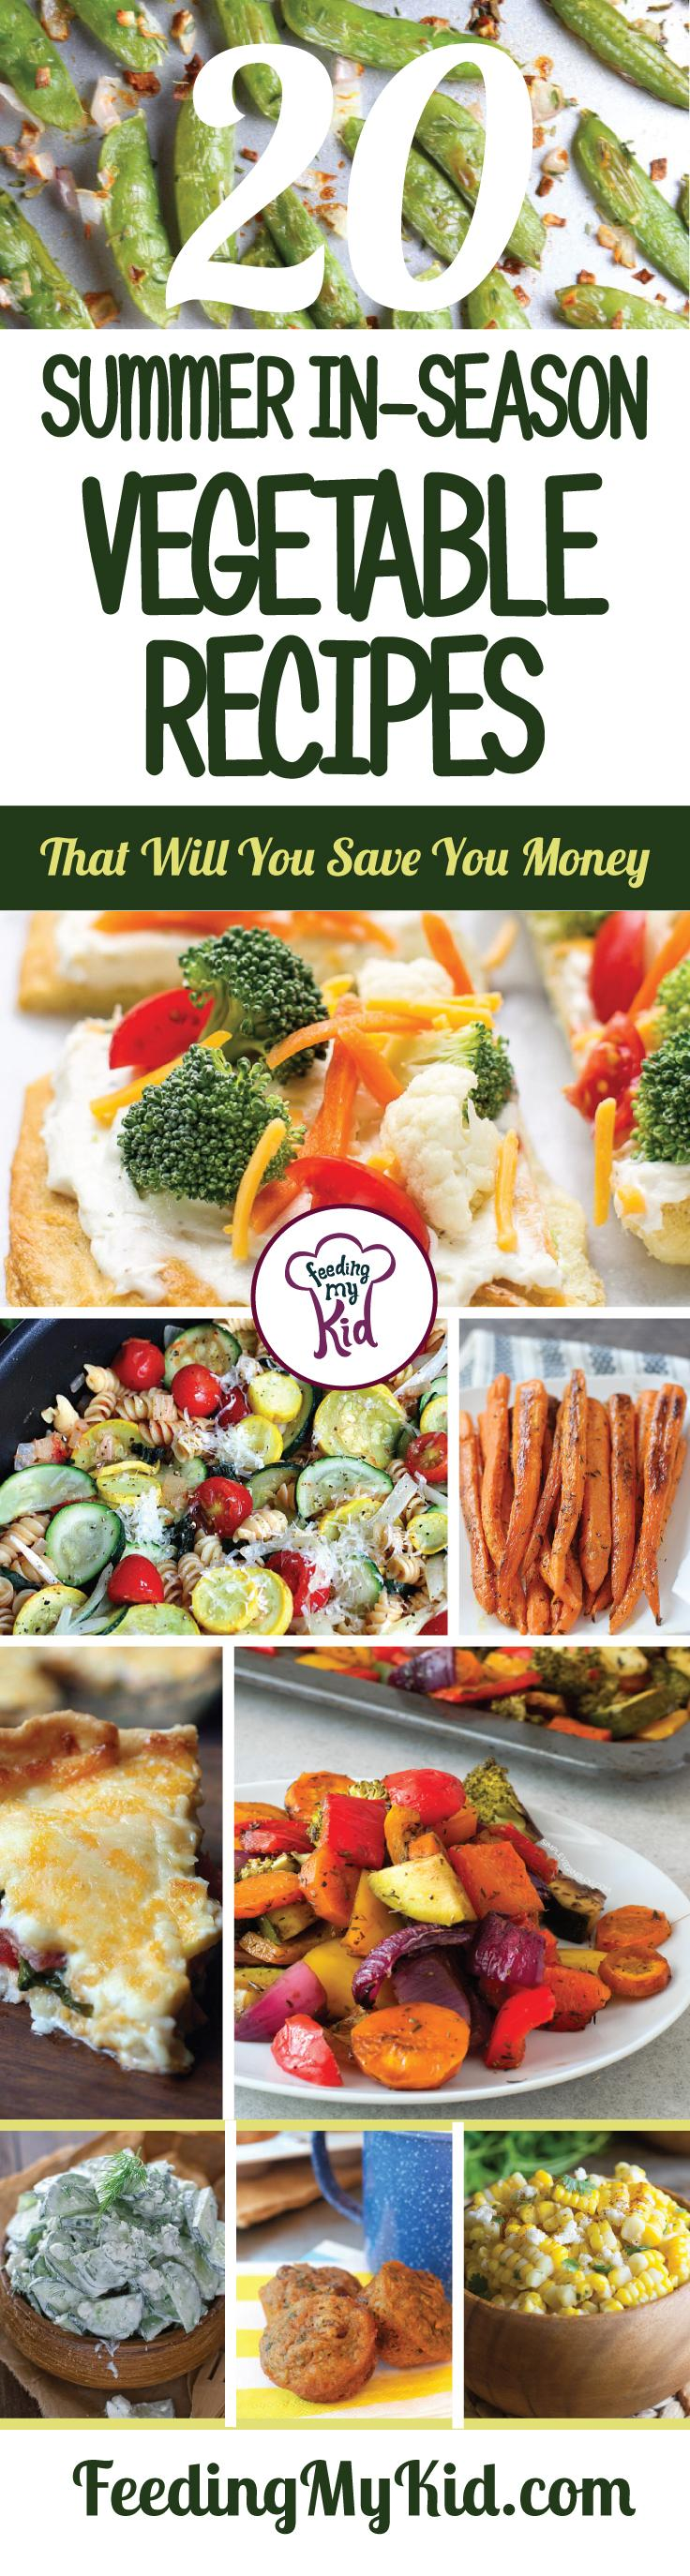 Try these amazing summer vegetable recipes that use some of the ripest in-season veggies. Feeding My Kid is filled with all the information you need about how to raise your kids, from healthy tips to nutritious recipes. #FeedingMyKid #summerrecipes #veggies #lunch #dinner #recipes